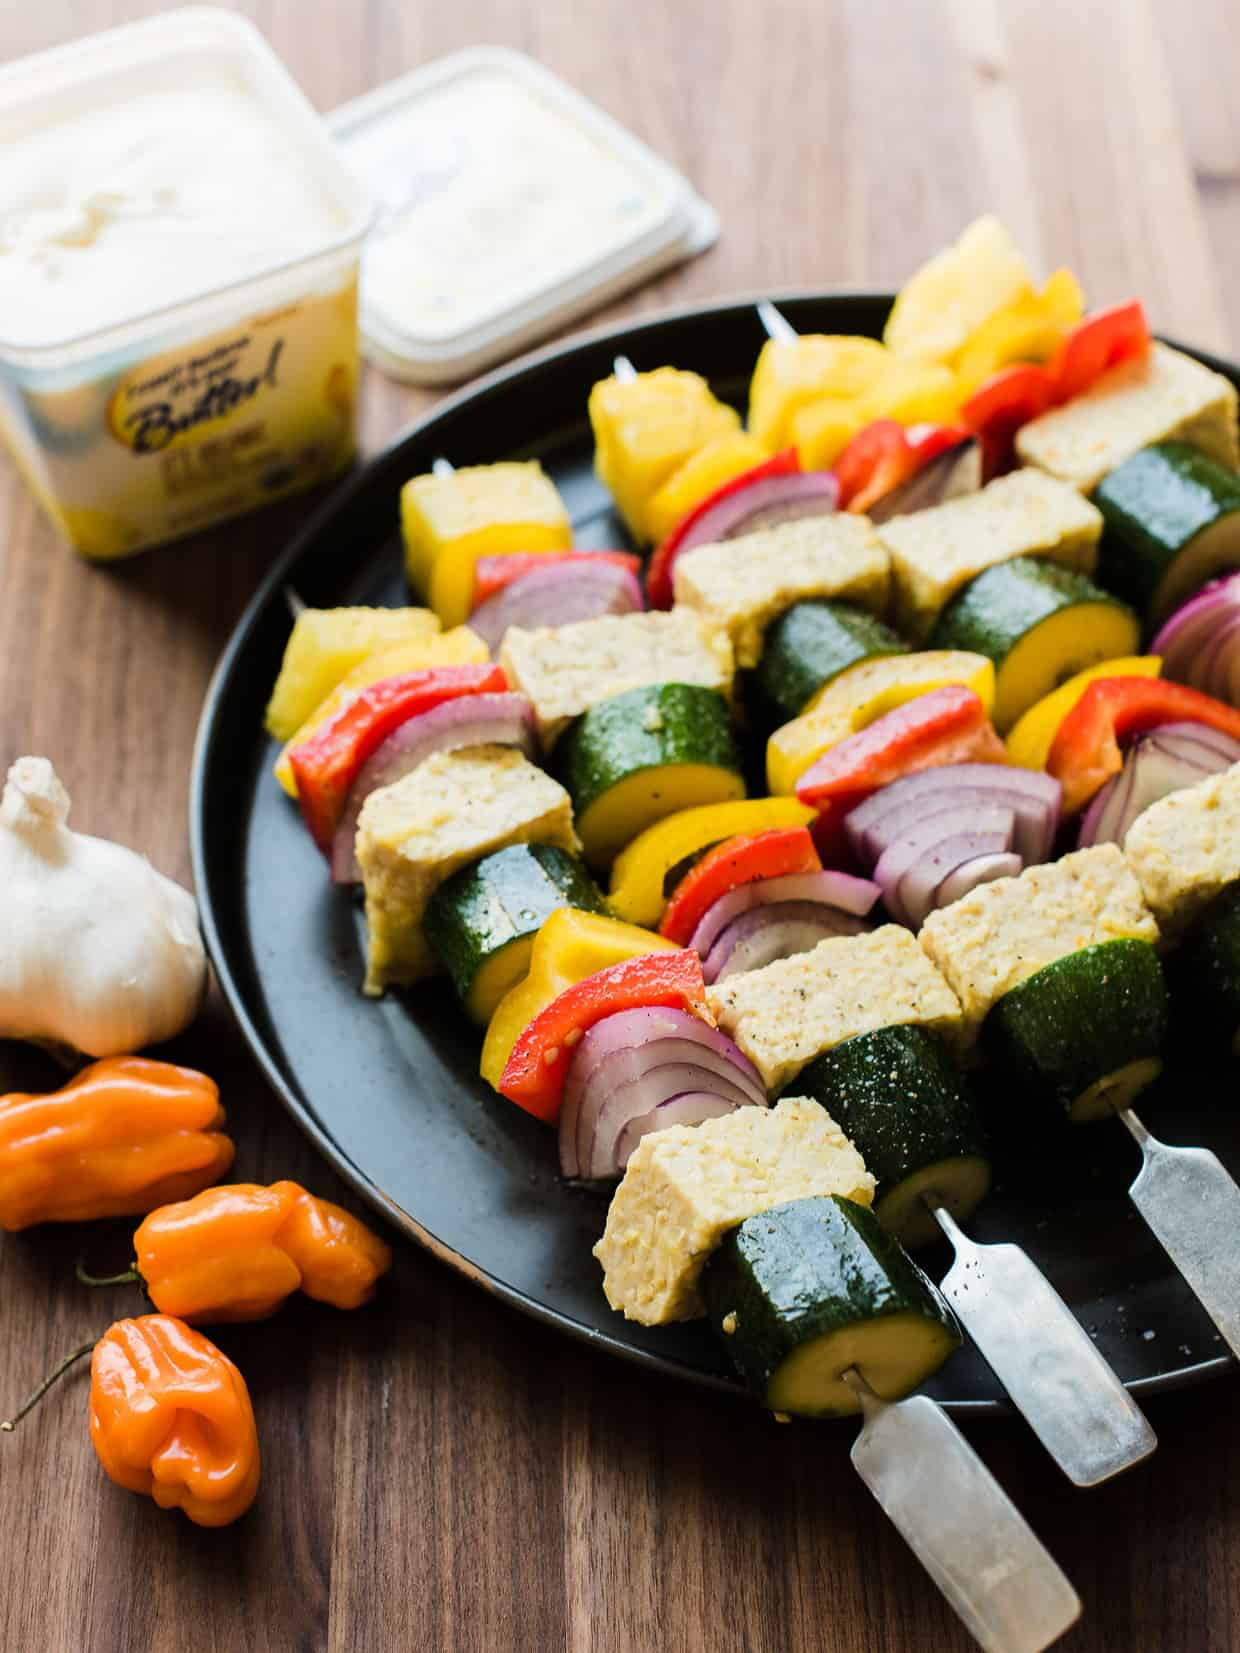 Grilled vegetable skewers with pineapple on a dark plate.